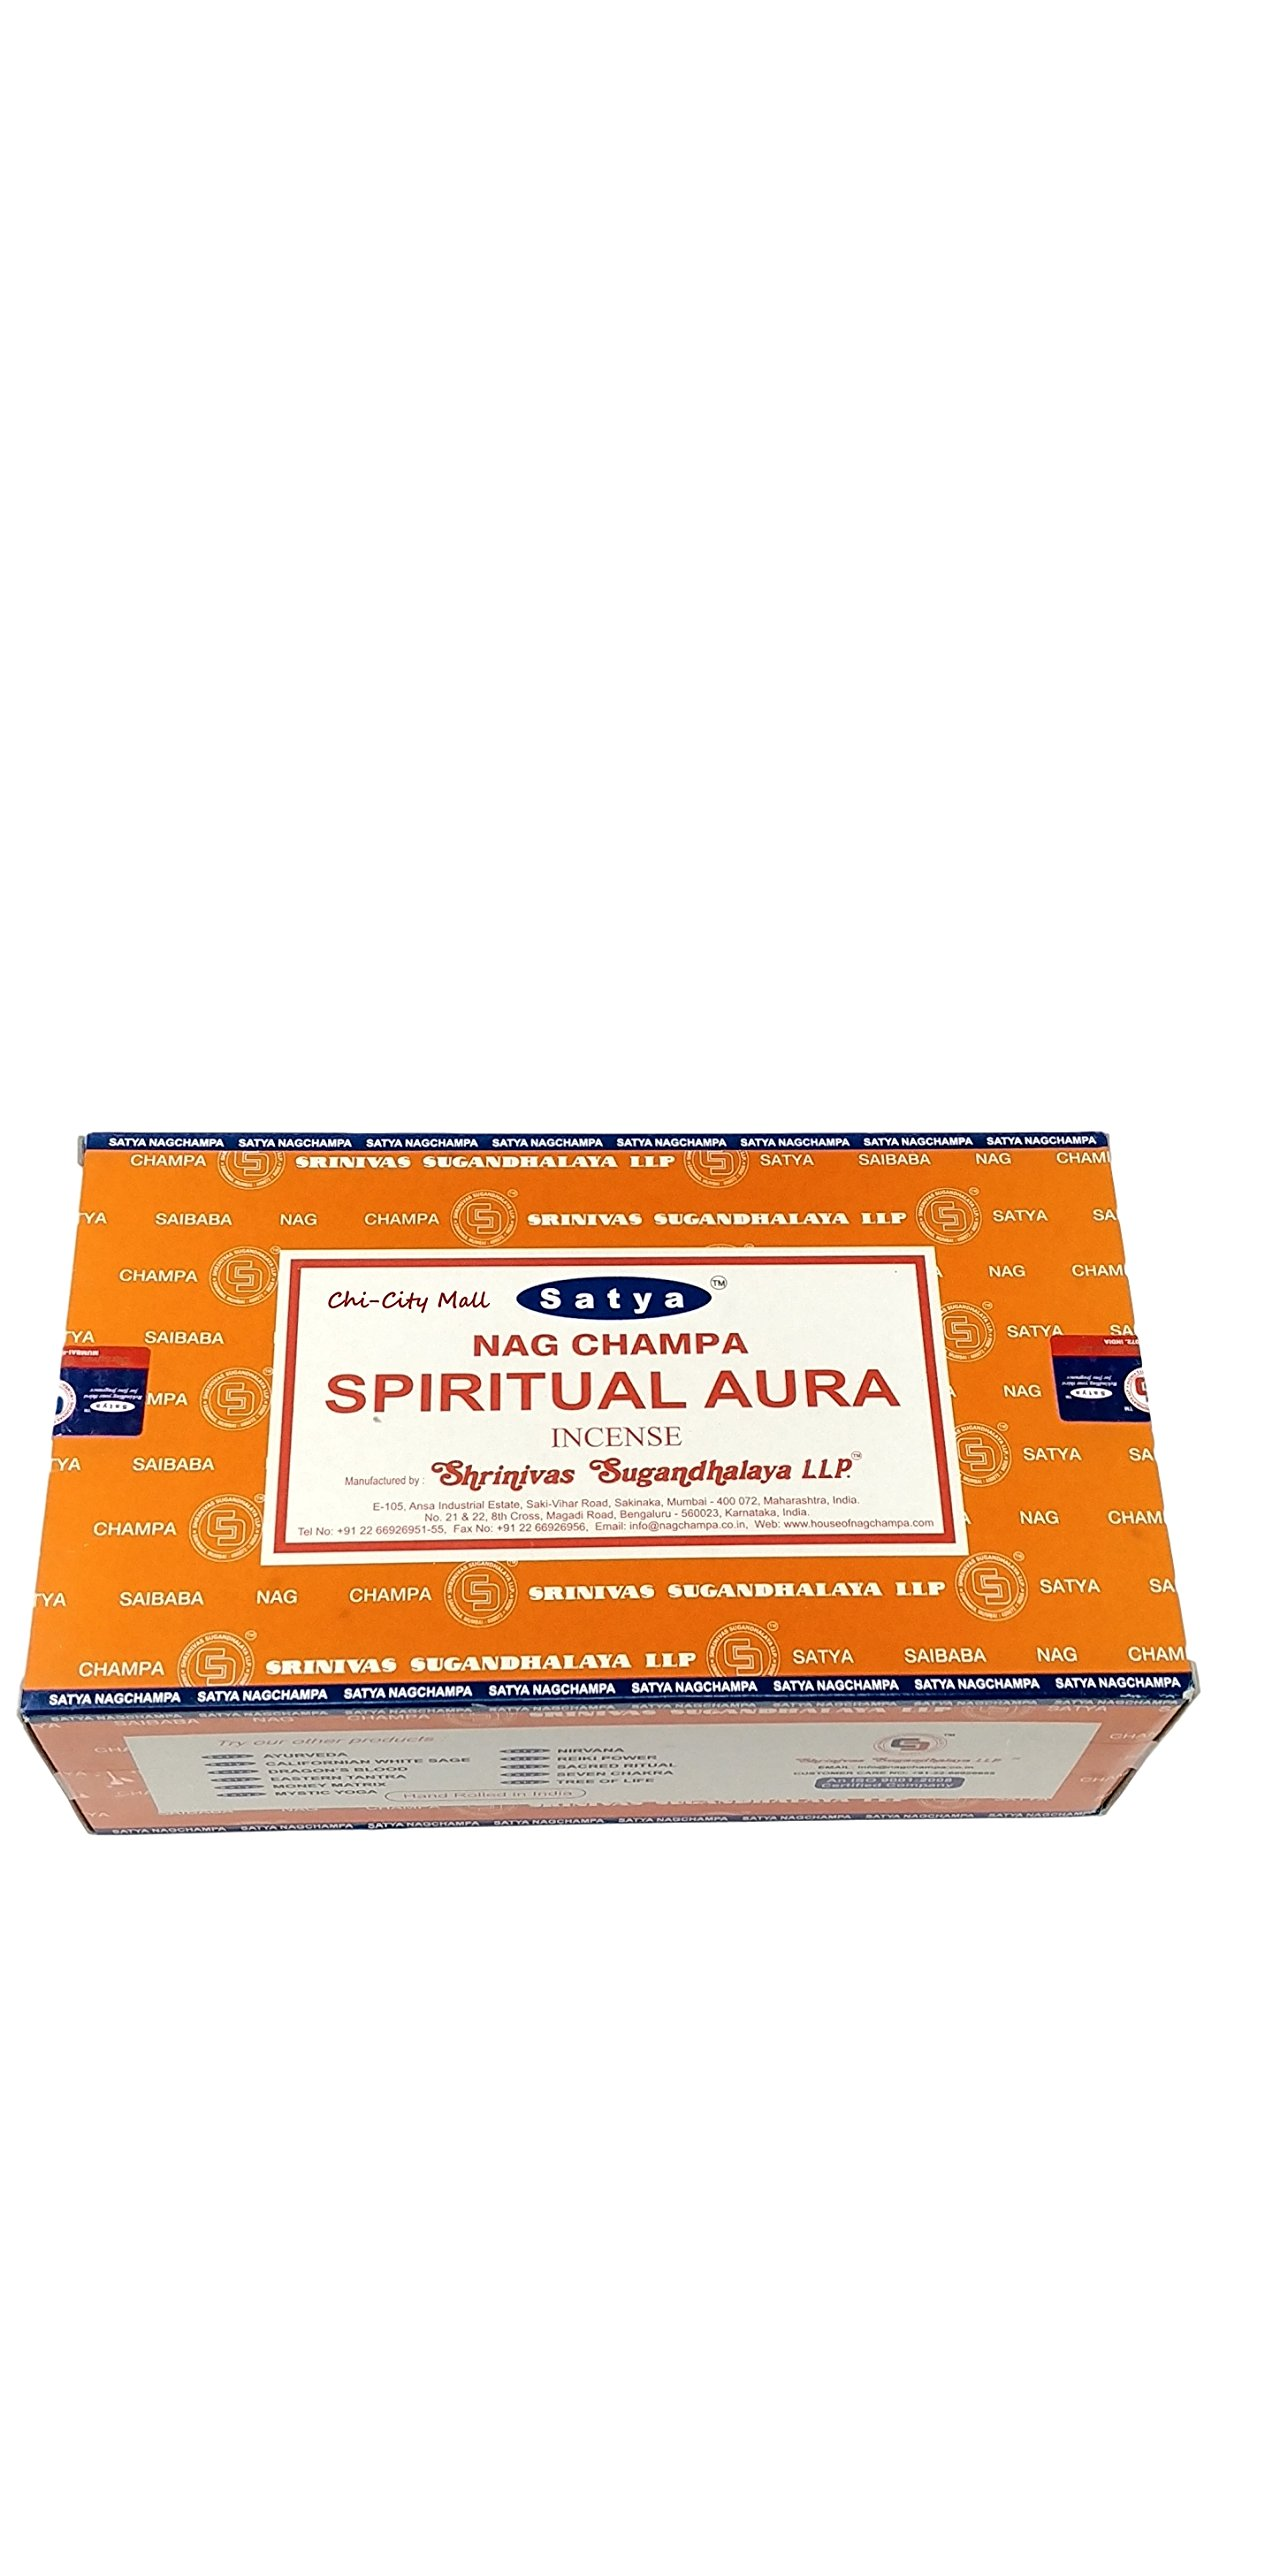 Chi-City Mall Satya Nag Champa Spiritual Aura Incense Sticks | Signature Fragrance | Net Wt: 15g x 12 boxes = 180g | Exclusively Made in India | Export Quality | Handrolled Non-Toxic Incense